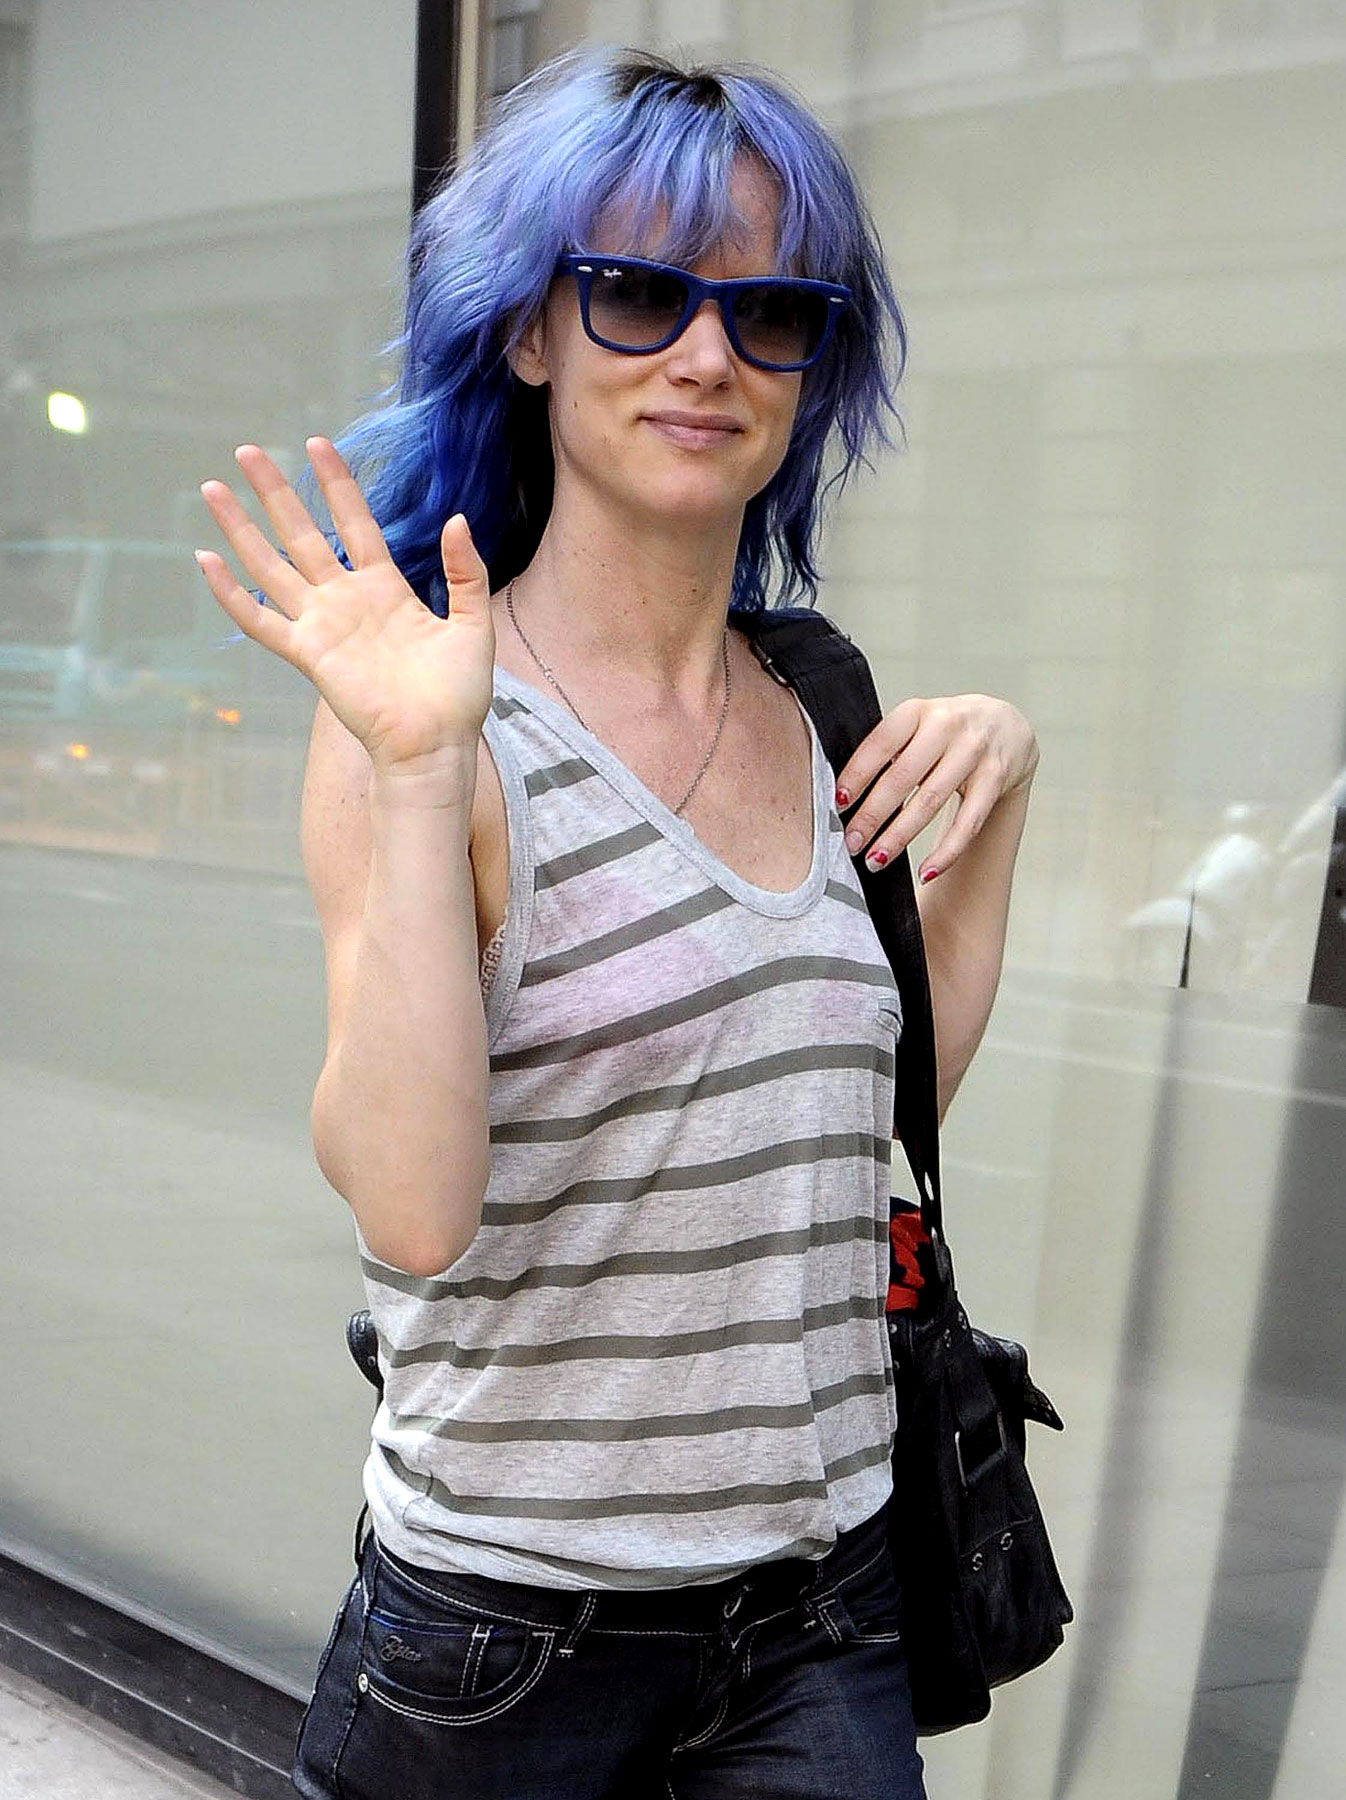 Juliette Lewis And Her Smurf Hair (PHOTOS)